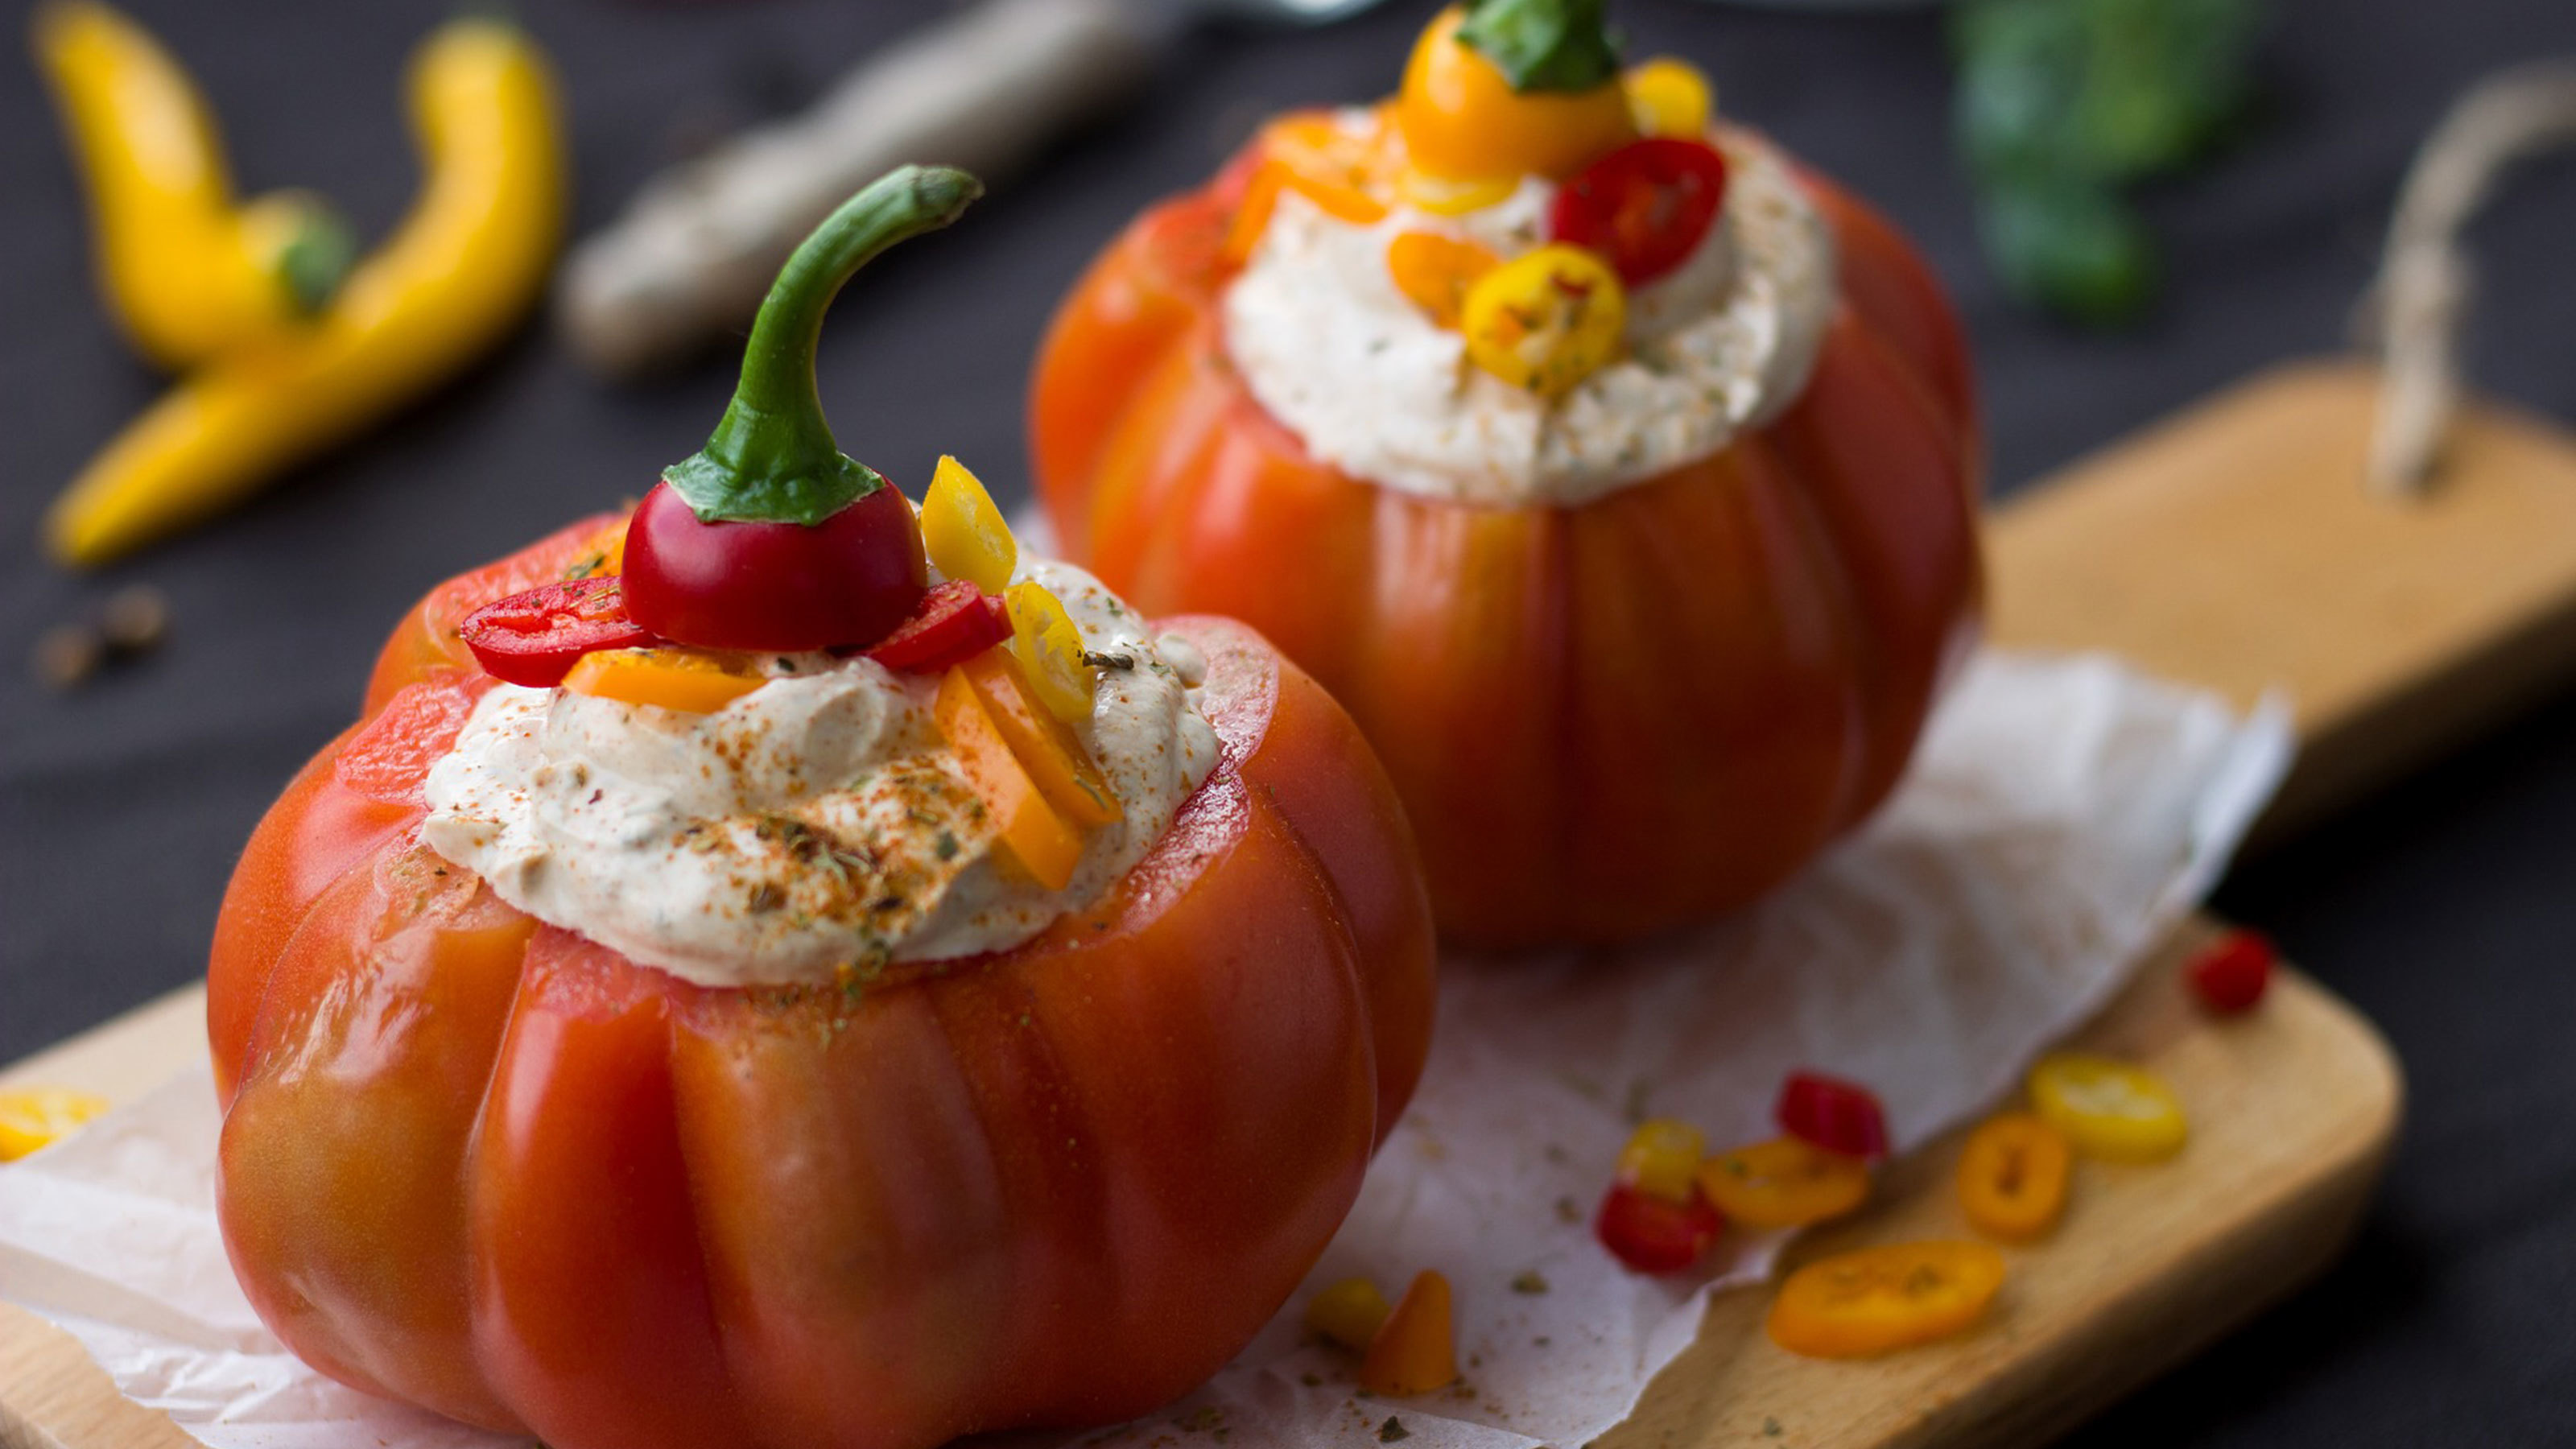 Pepper-stuffed-with-cheese-and-chilli